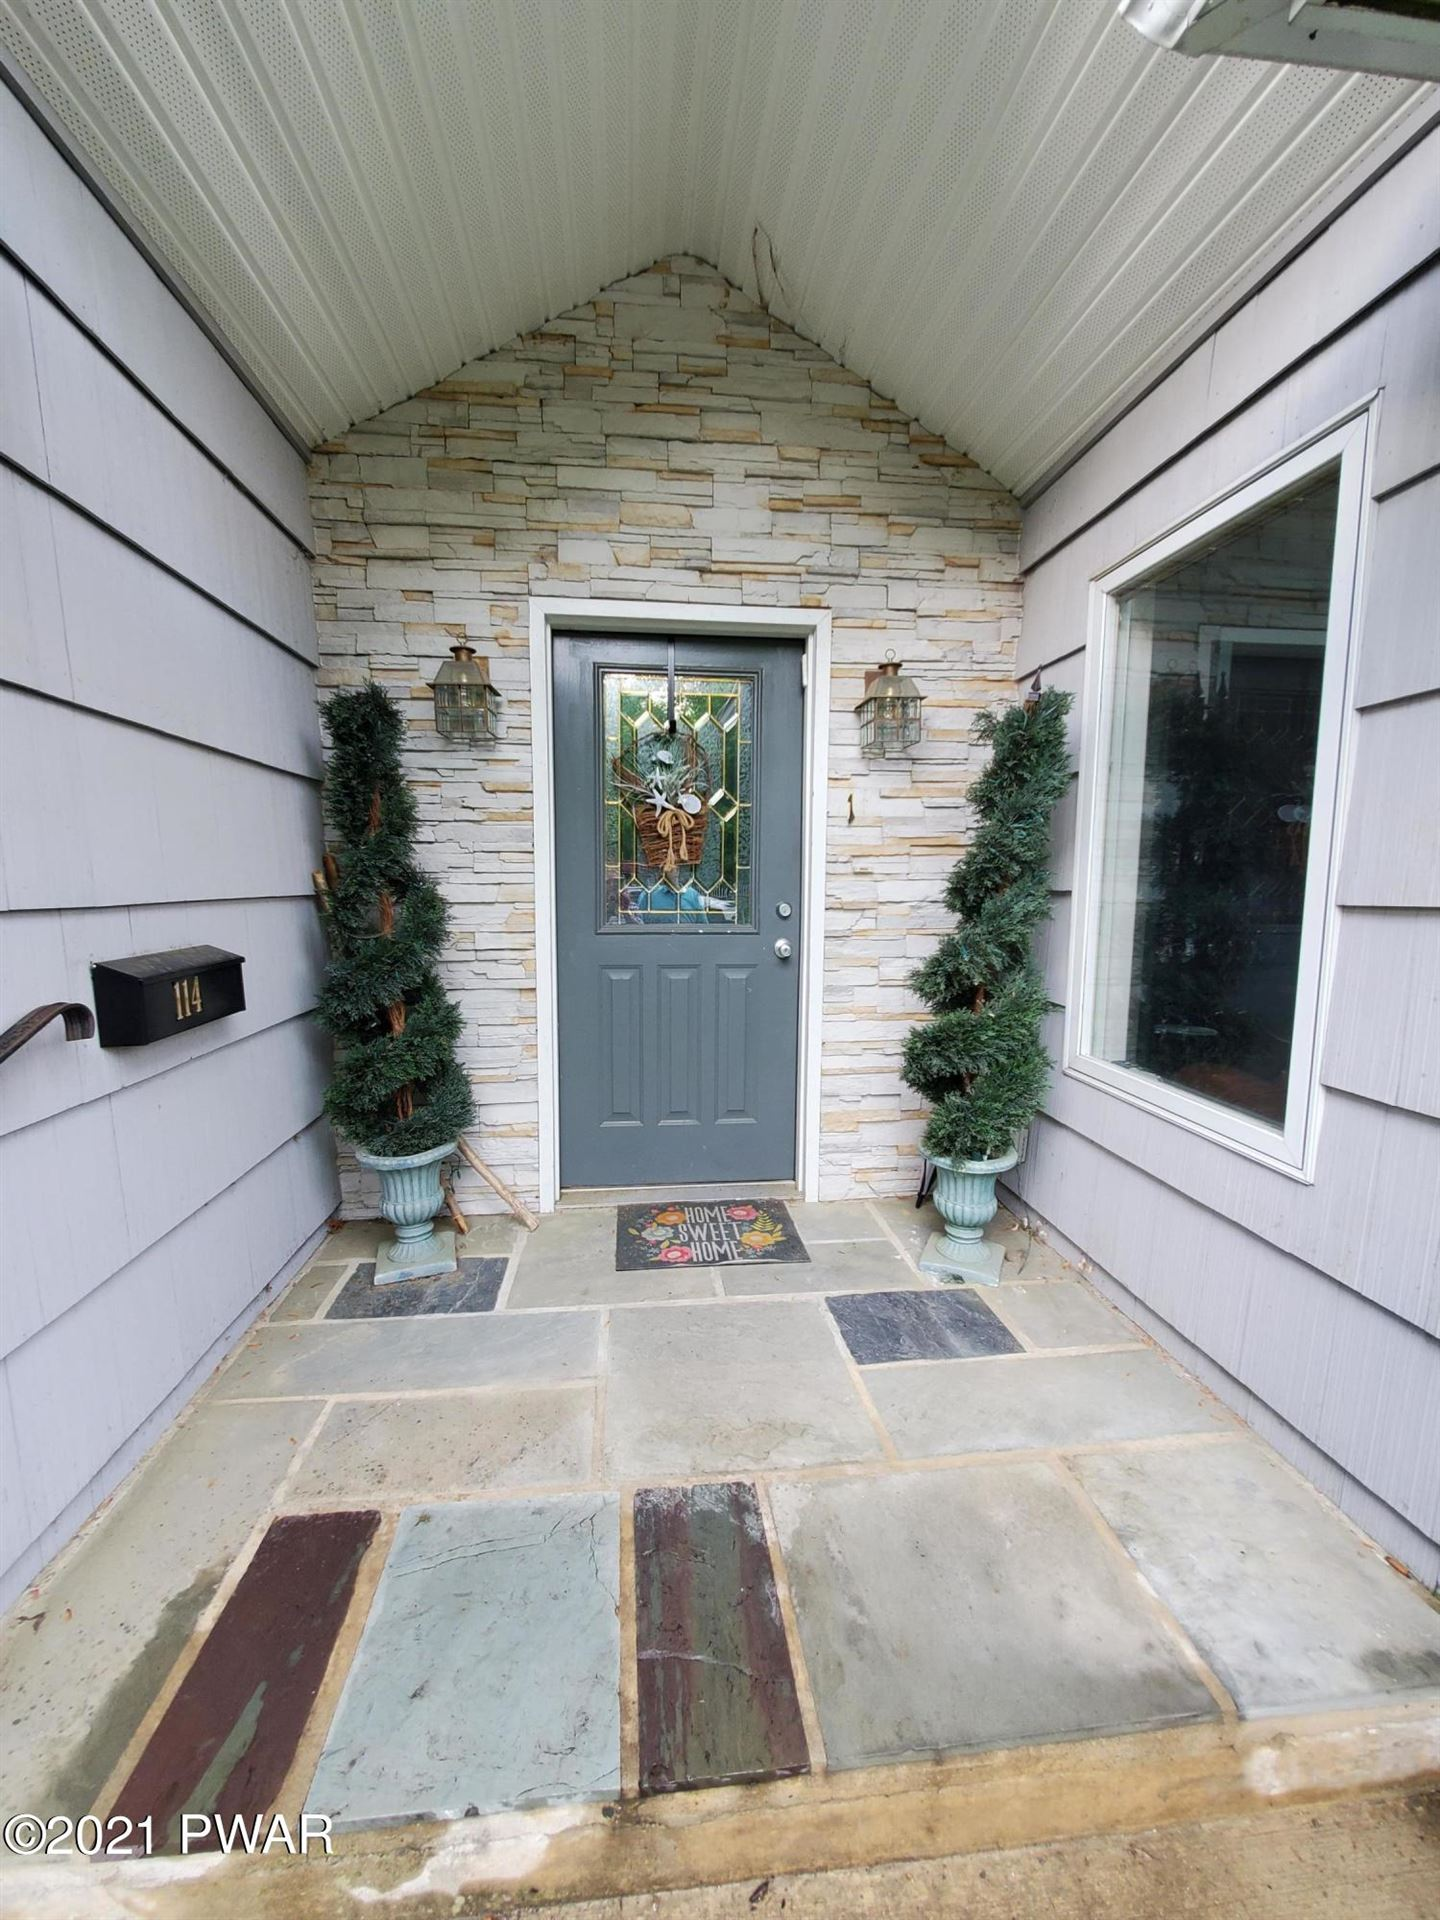 Photo of 114 E George St, Milford, PA 18337 (MLS # 21-2059)